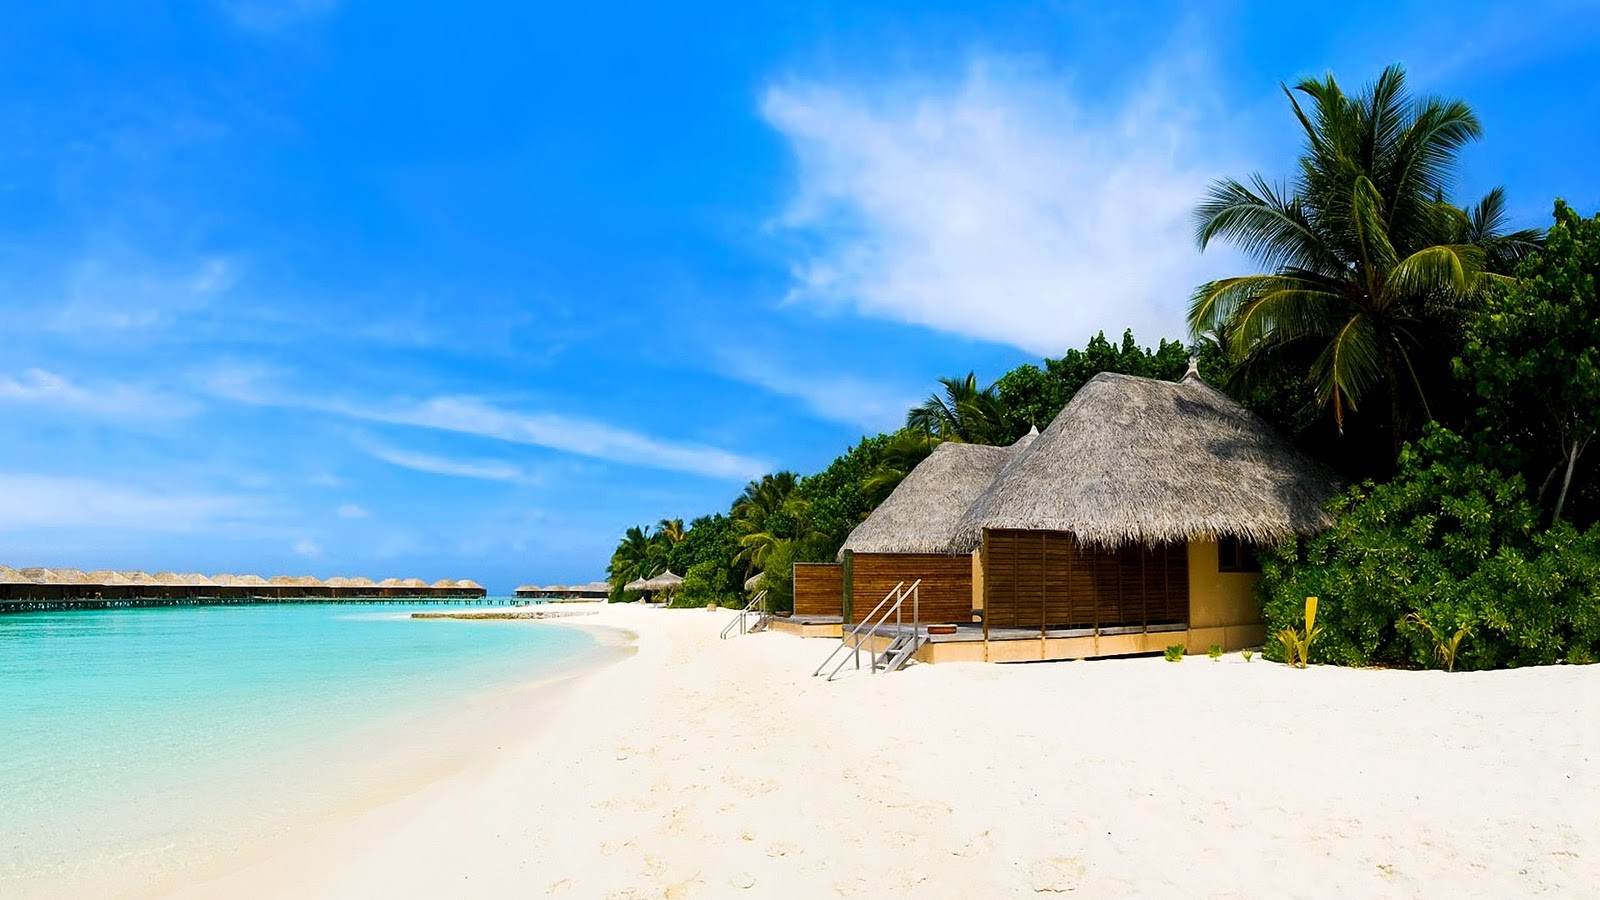 http://1.bp.blogspot.com/_GoCwCBsEsa4/TStUteHp2FI/AAAAAAAAAhg/R34YxiXh7cE/s1600/beach-bungalows-on-the-tropical-island-wallpaper-1920x1080.jpg